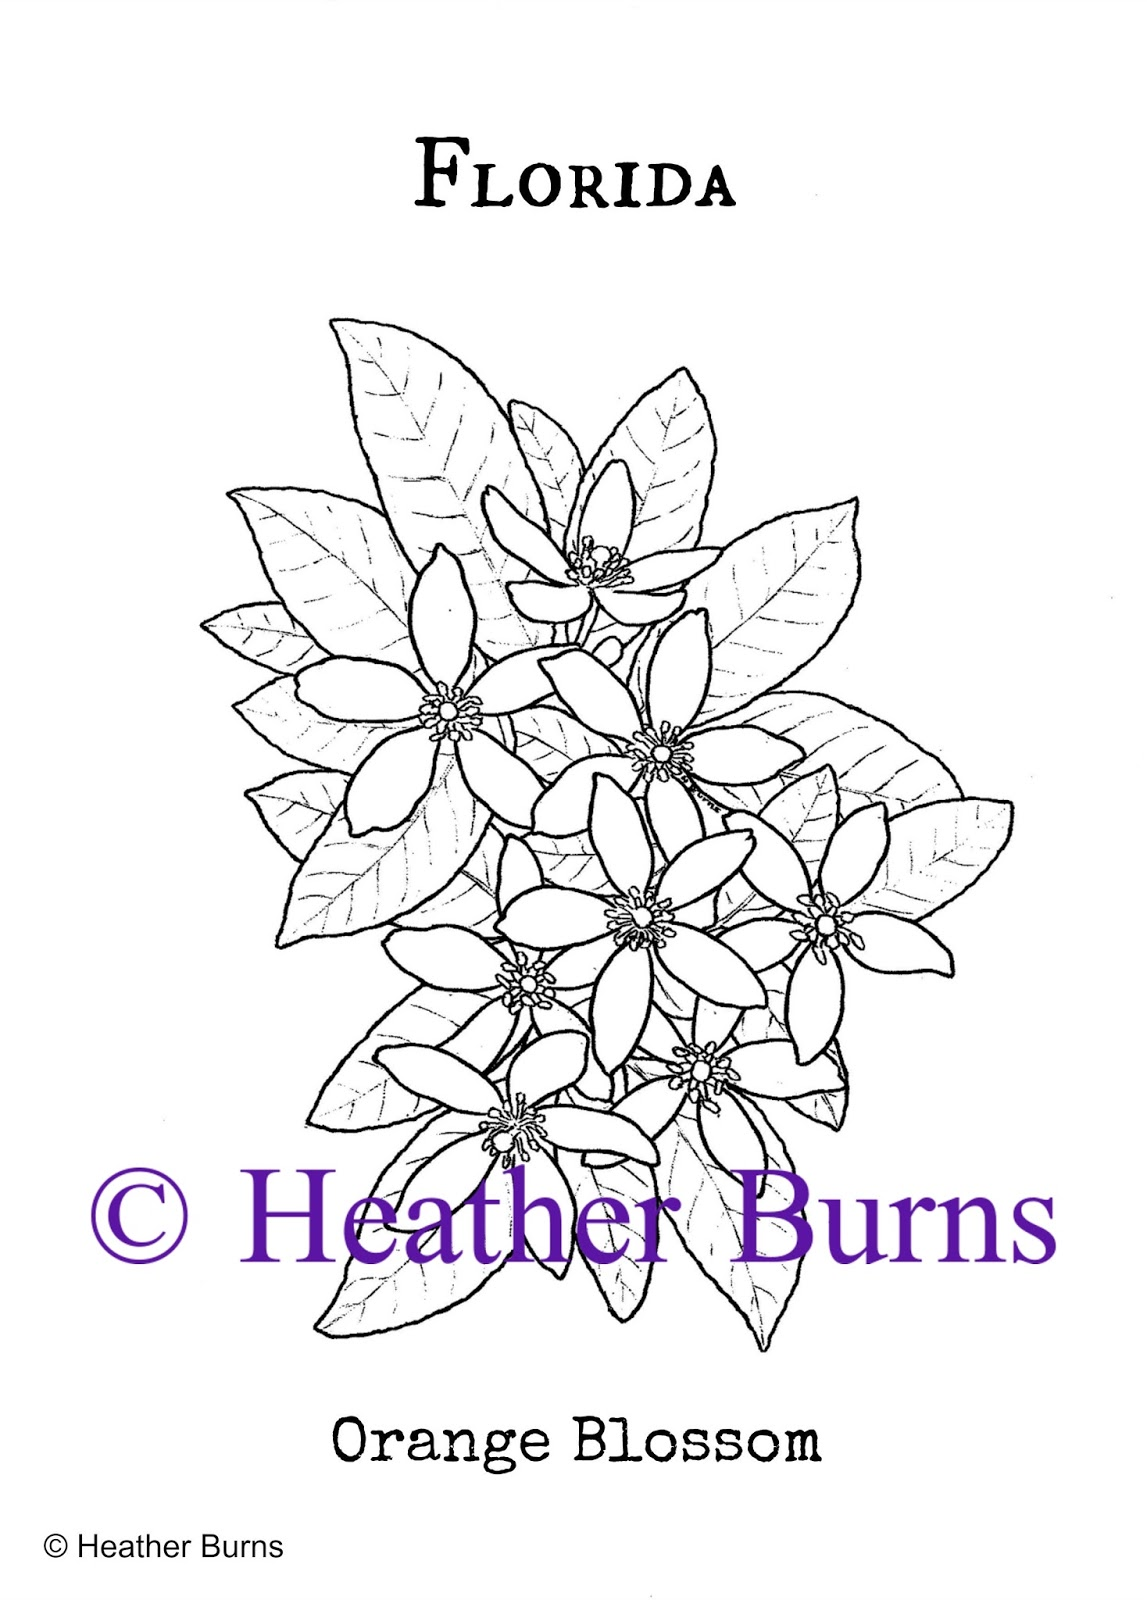 Orange blossom flower coloring page murderthestout for Florida state symbols coloring pages